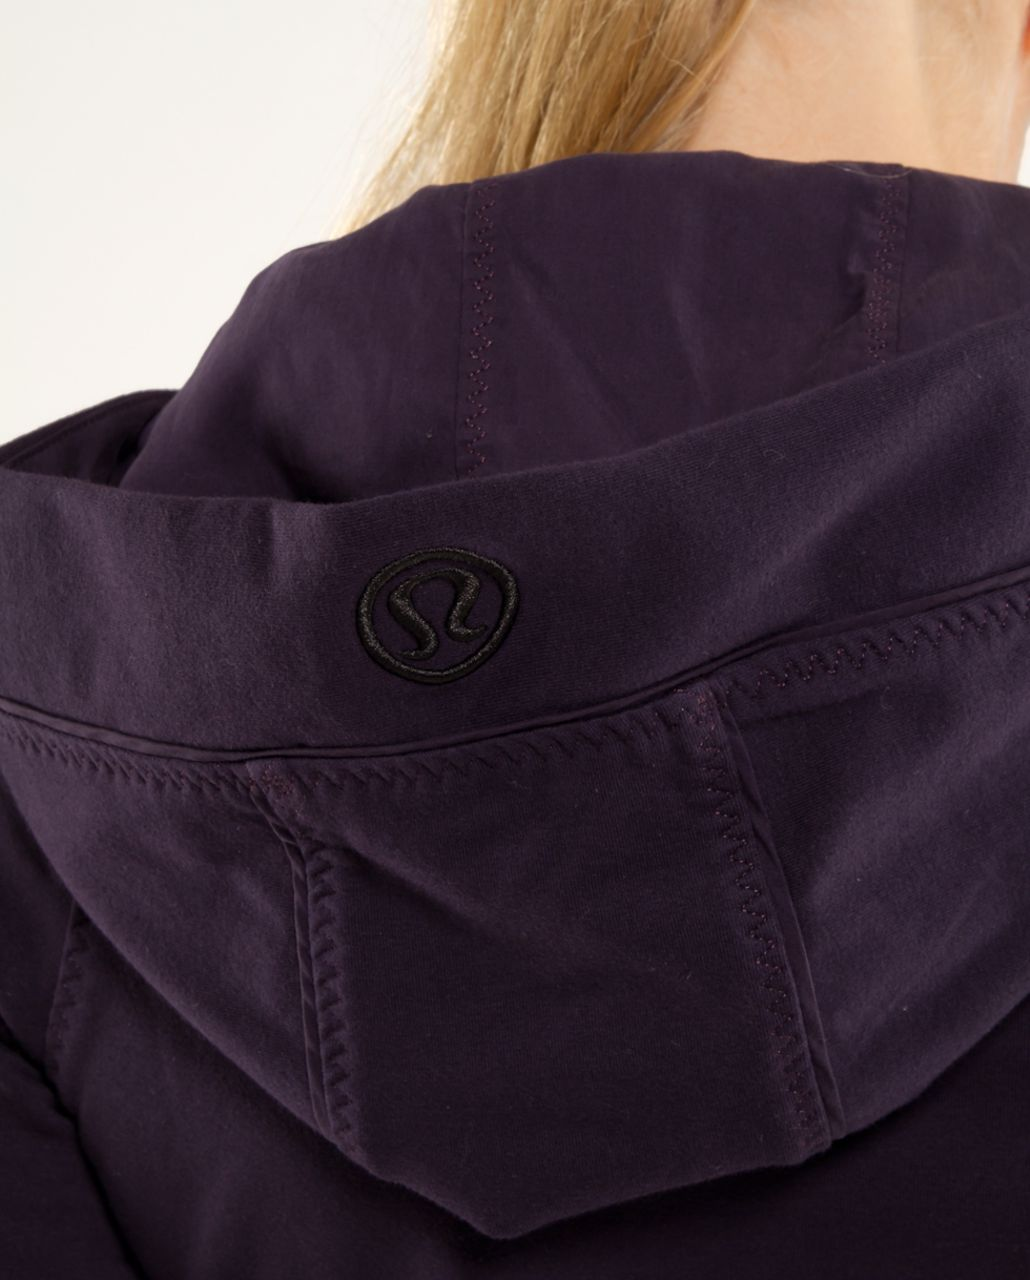 Lululemon Live Simply Jacket - Black Swan